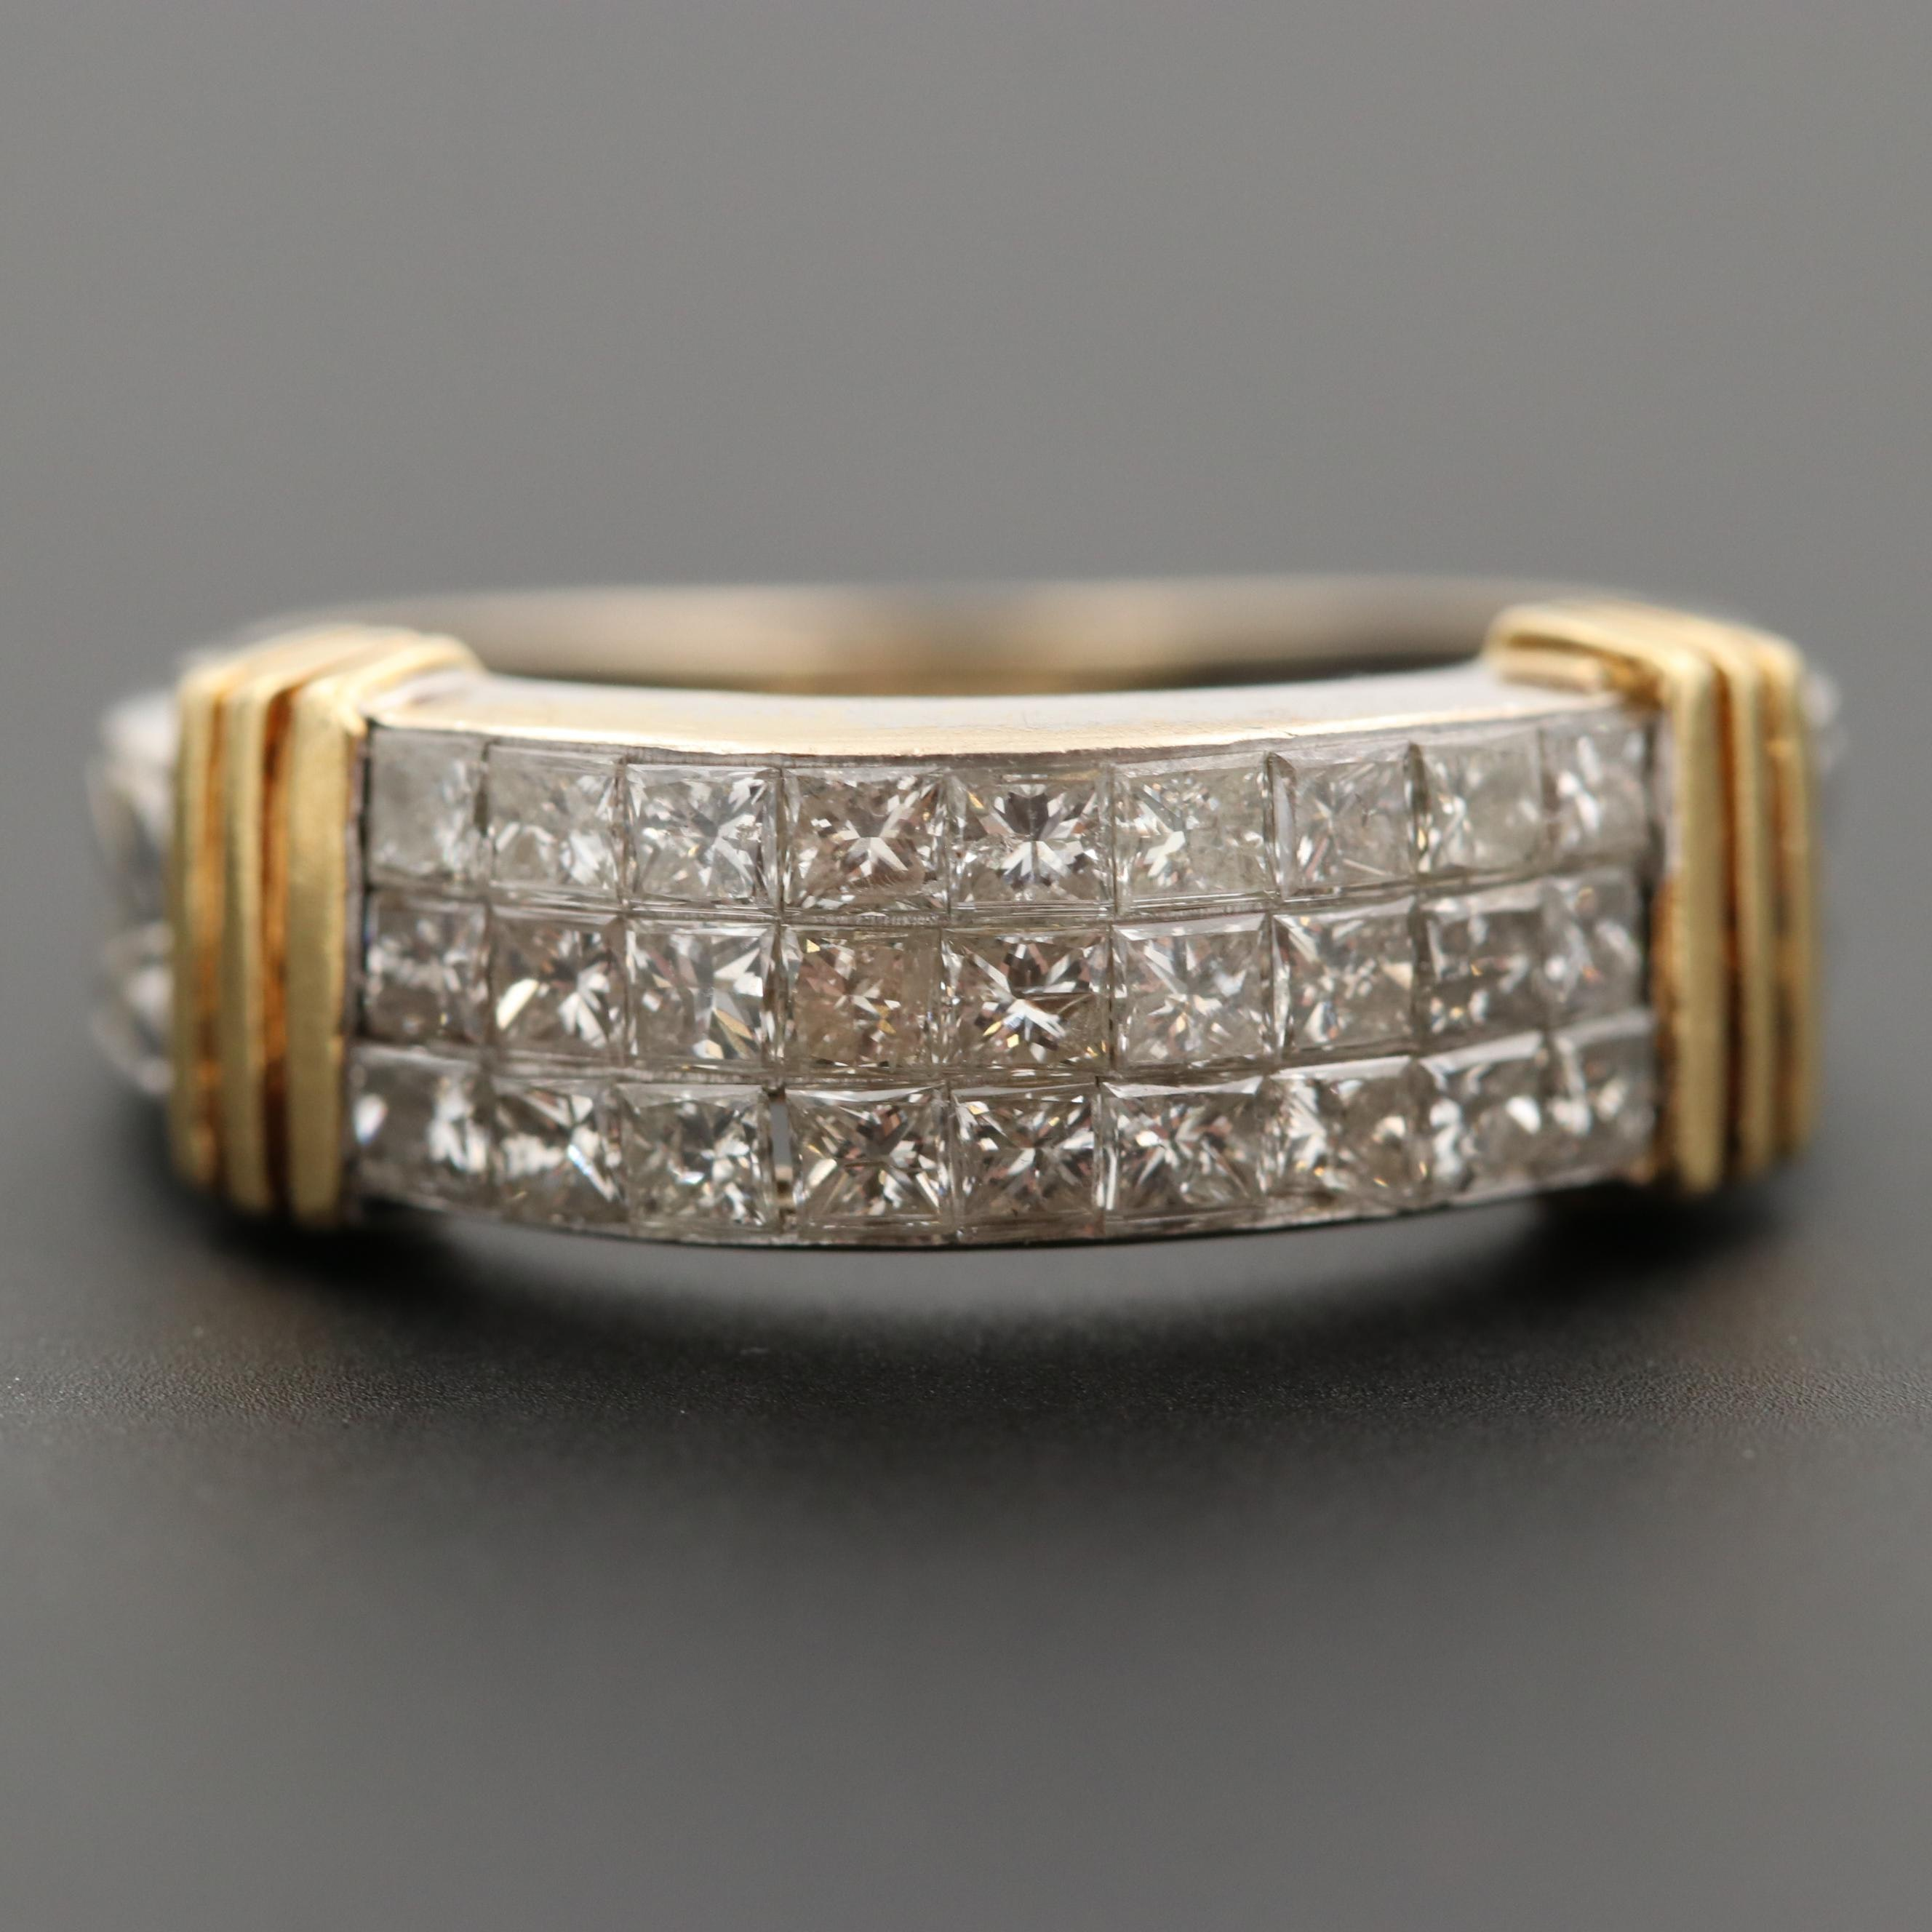 18K White Gold 1.08 CTW Diamond Ring with Yellow Gold Accents